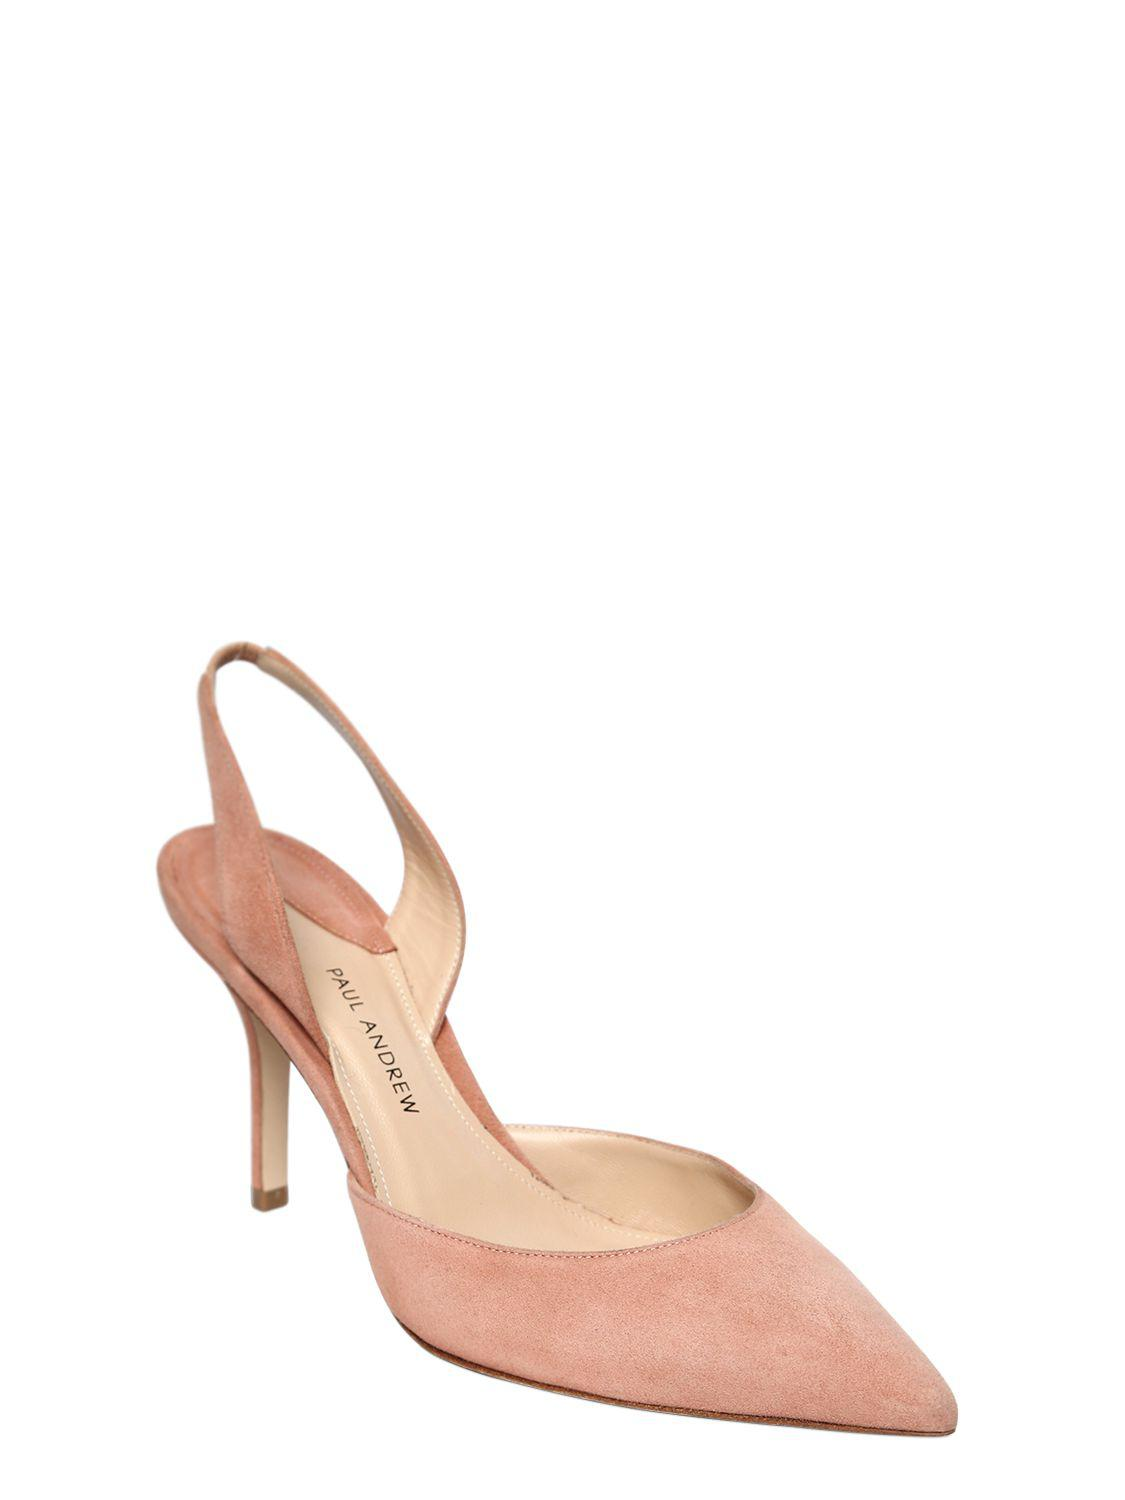 PAUL ANDREW 85MM RHEA SLING BACK SUEDE PUMPS XT6qhwj8mJ